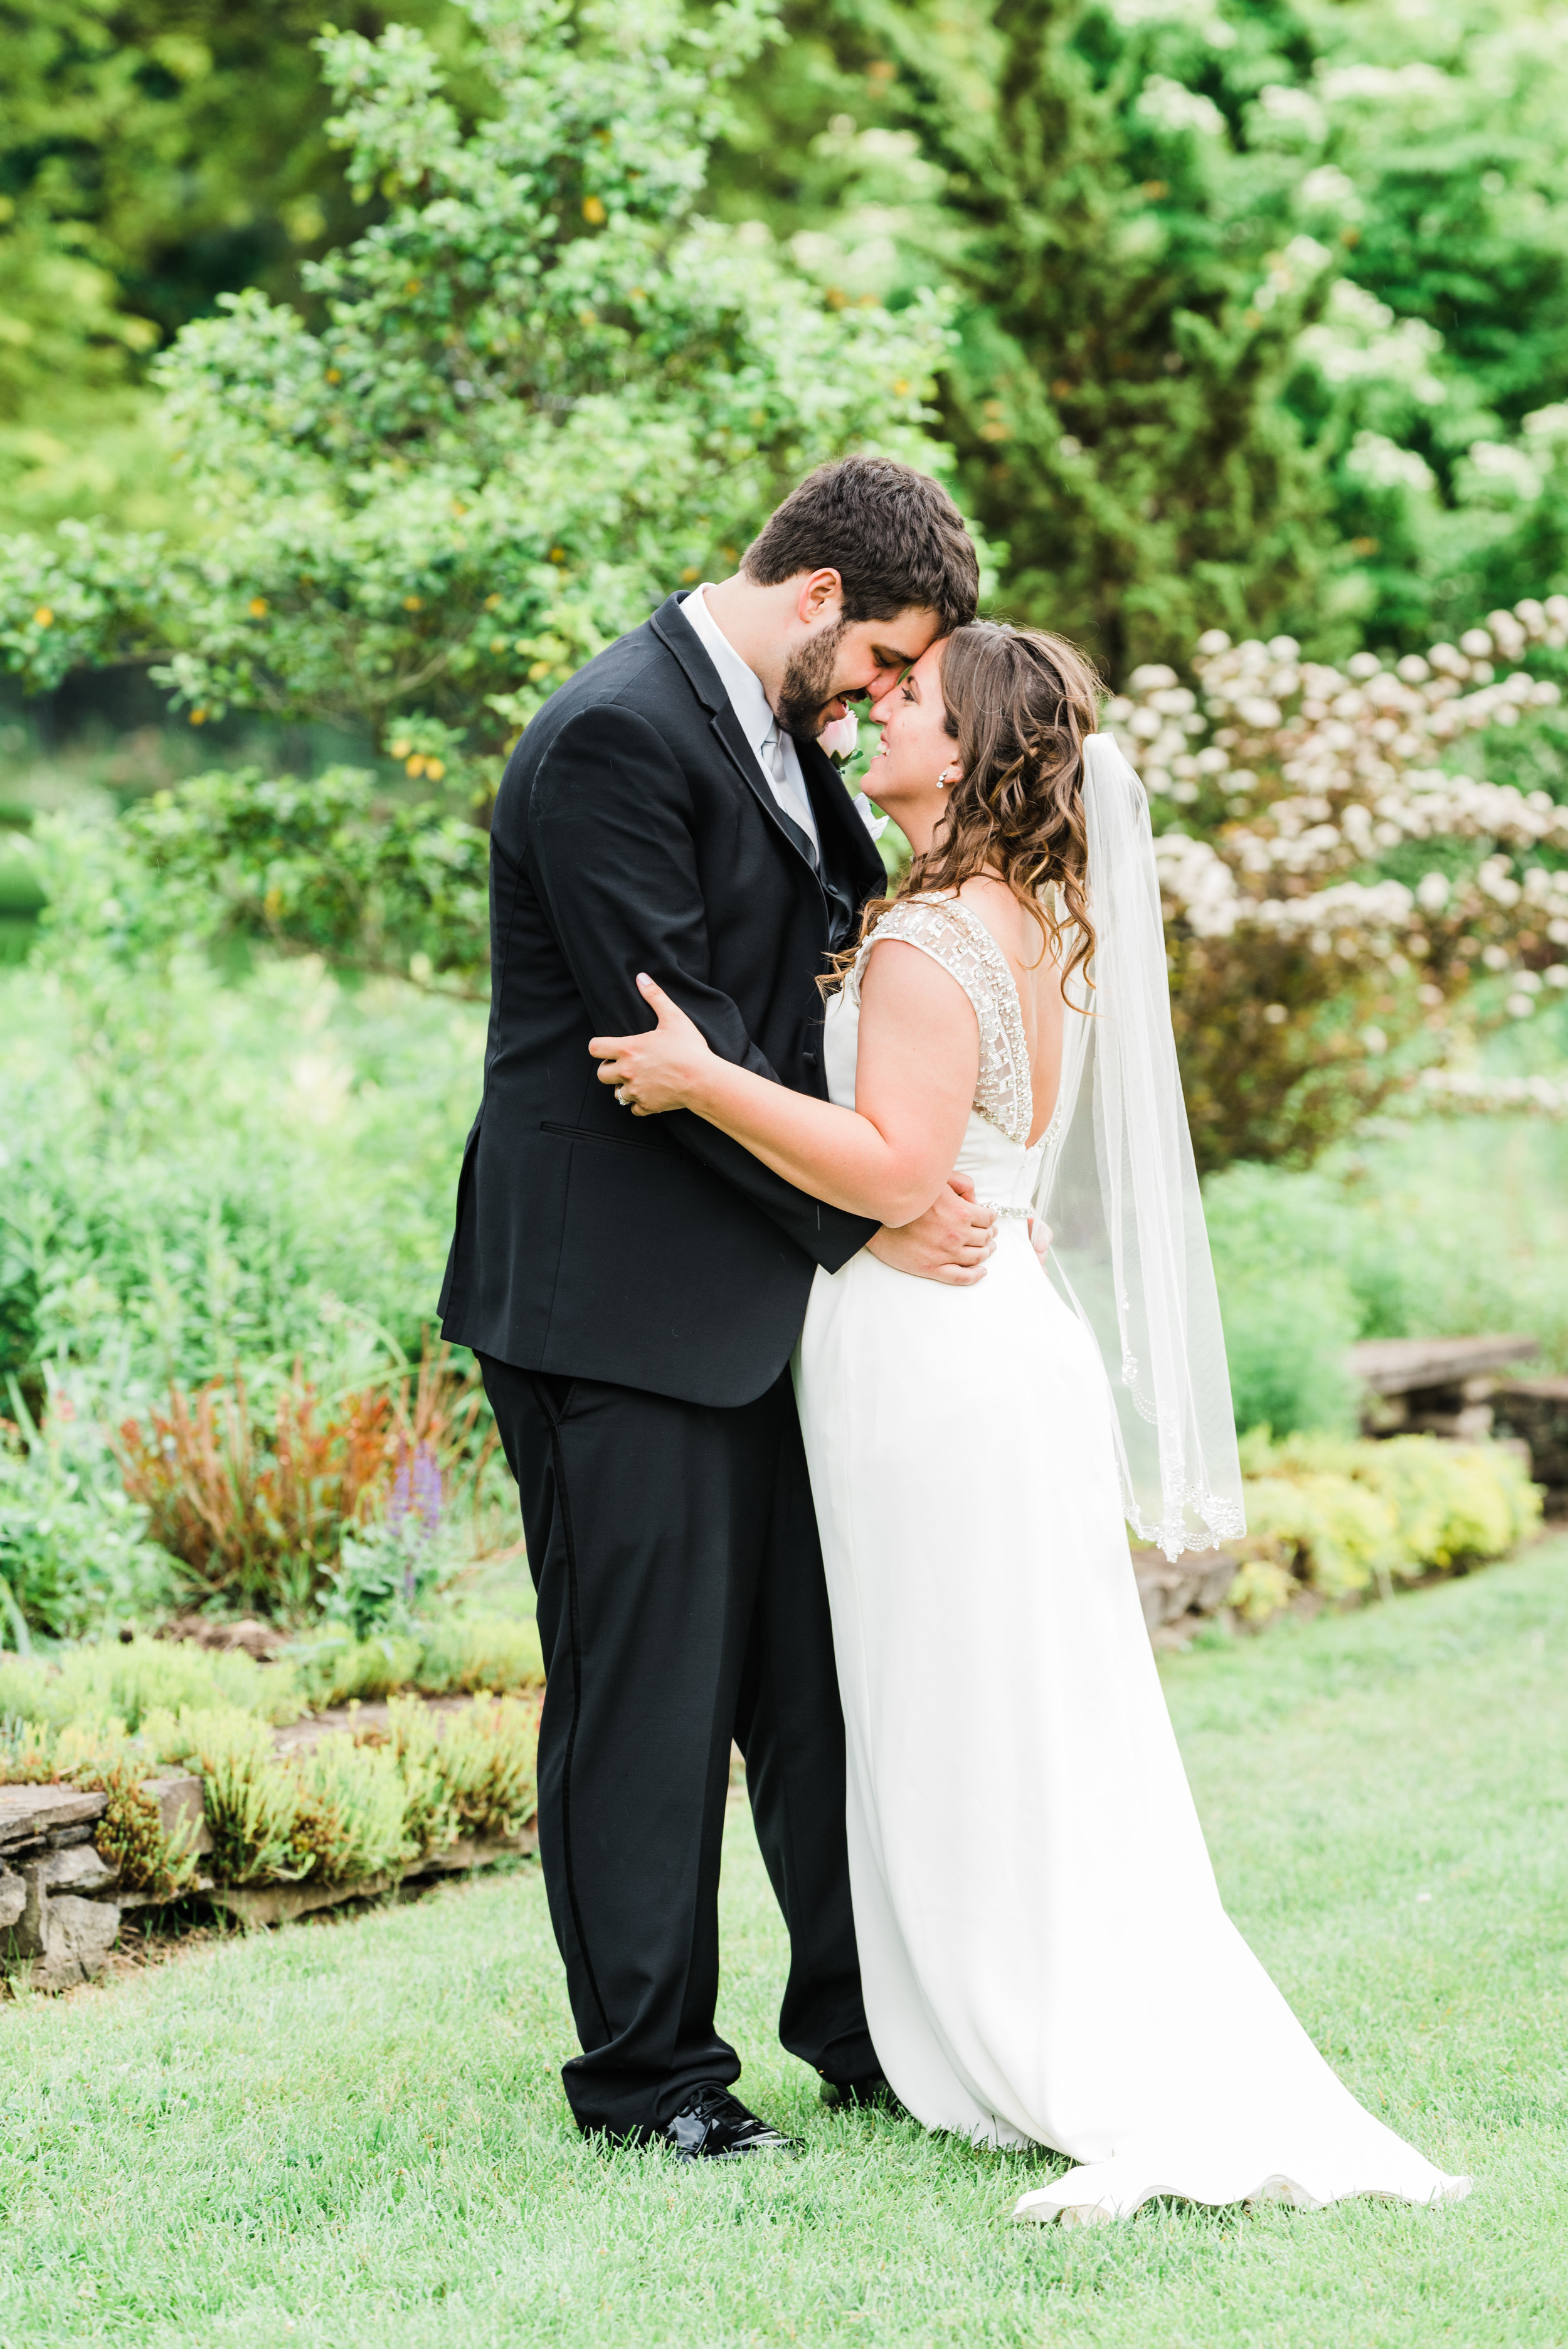 """- """"I used Happy Out Photography for my May 2018 wedding and out of all my vendors, they were my favorite. (Katie) was very organized and helped me plan the little details I would've never thought of"""".-Chrissy Z."""